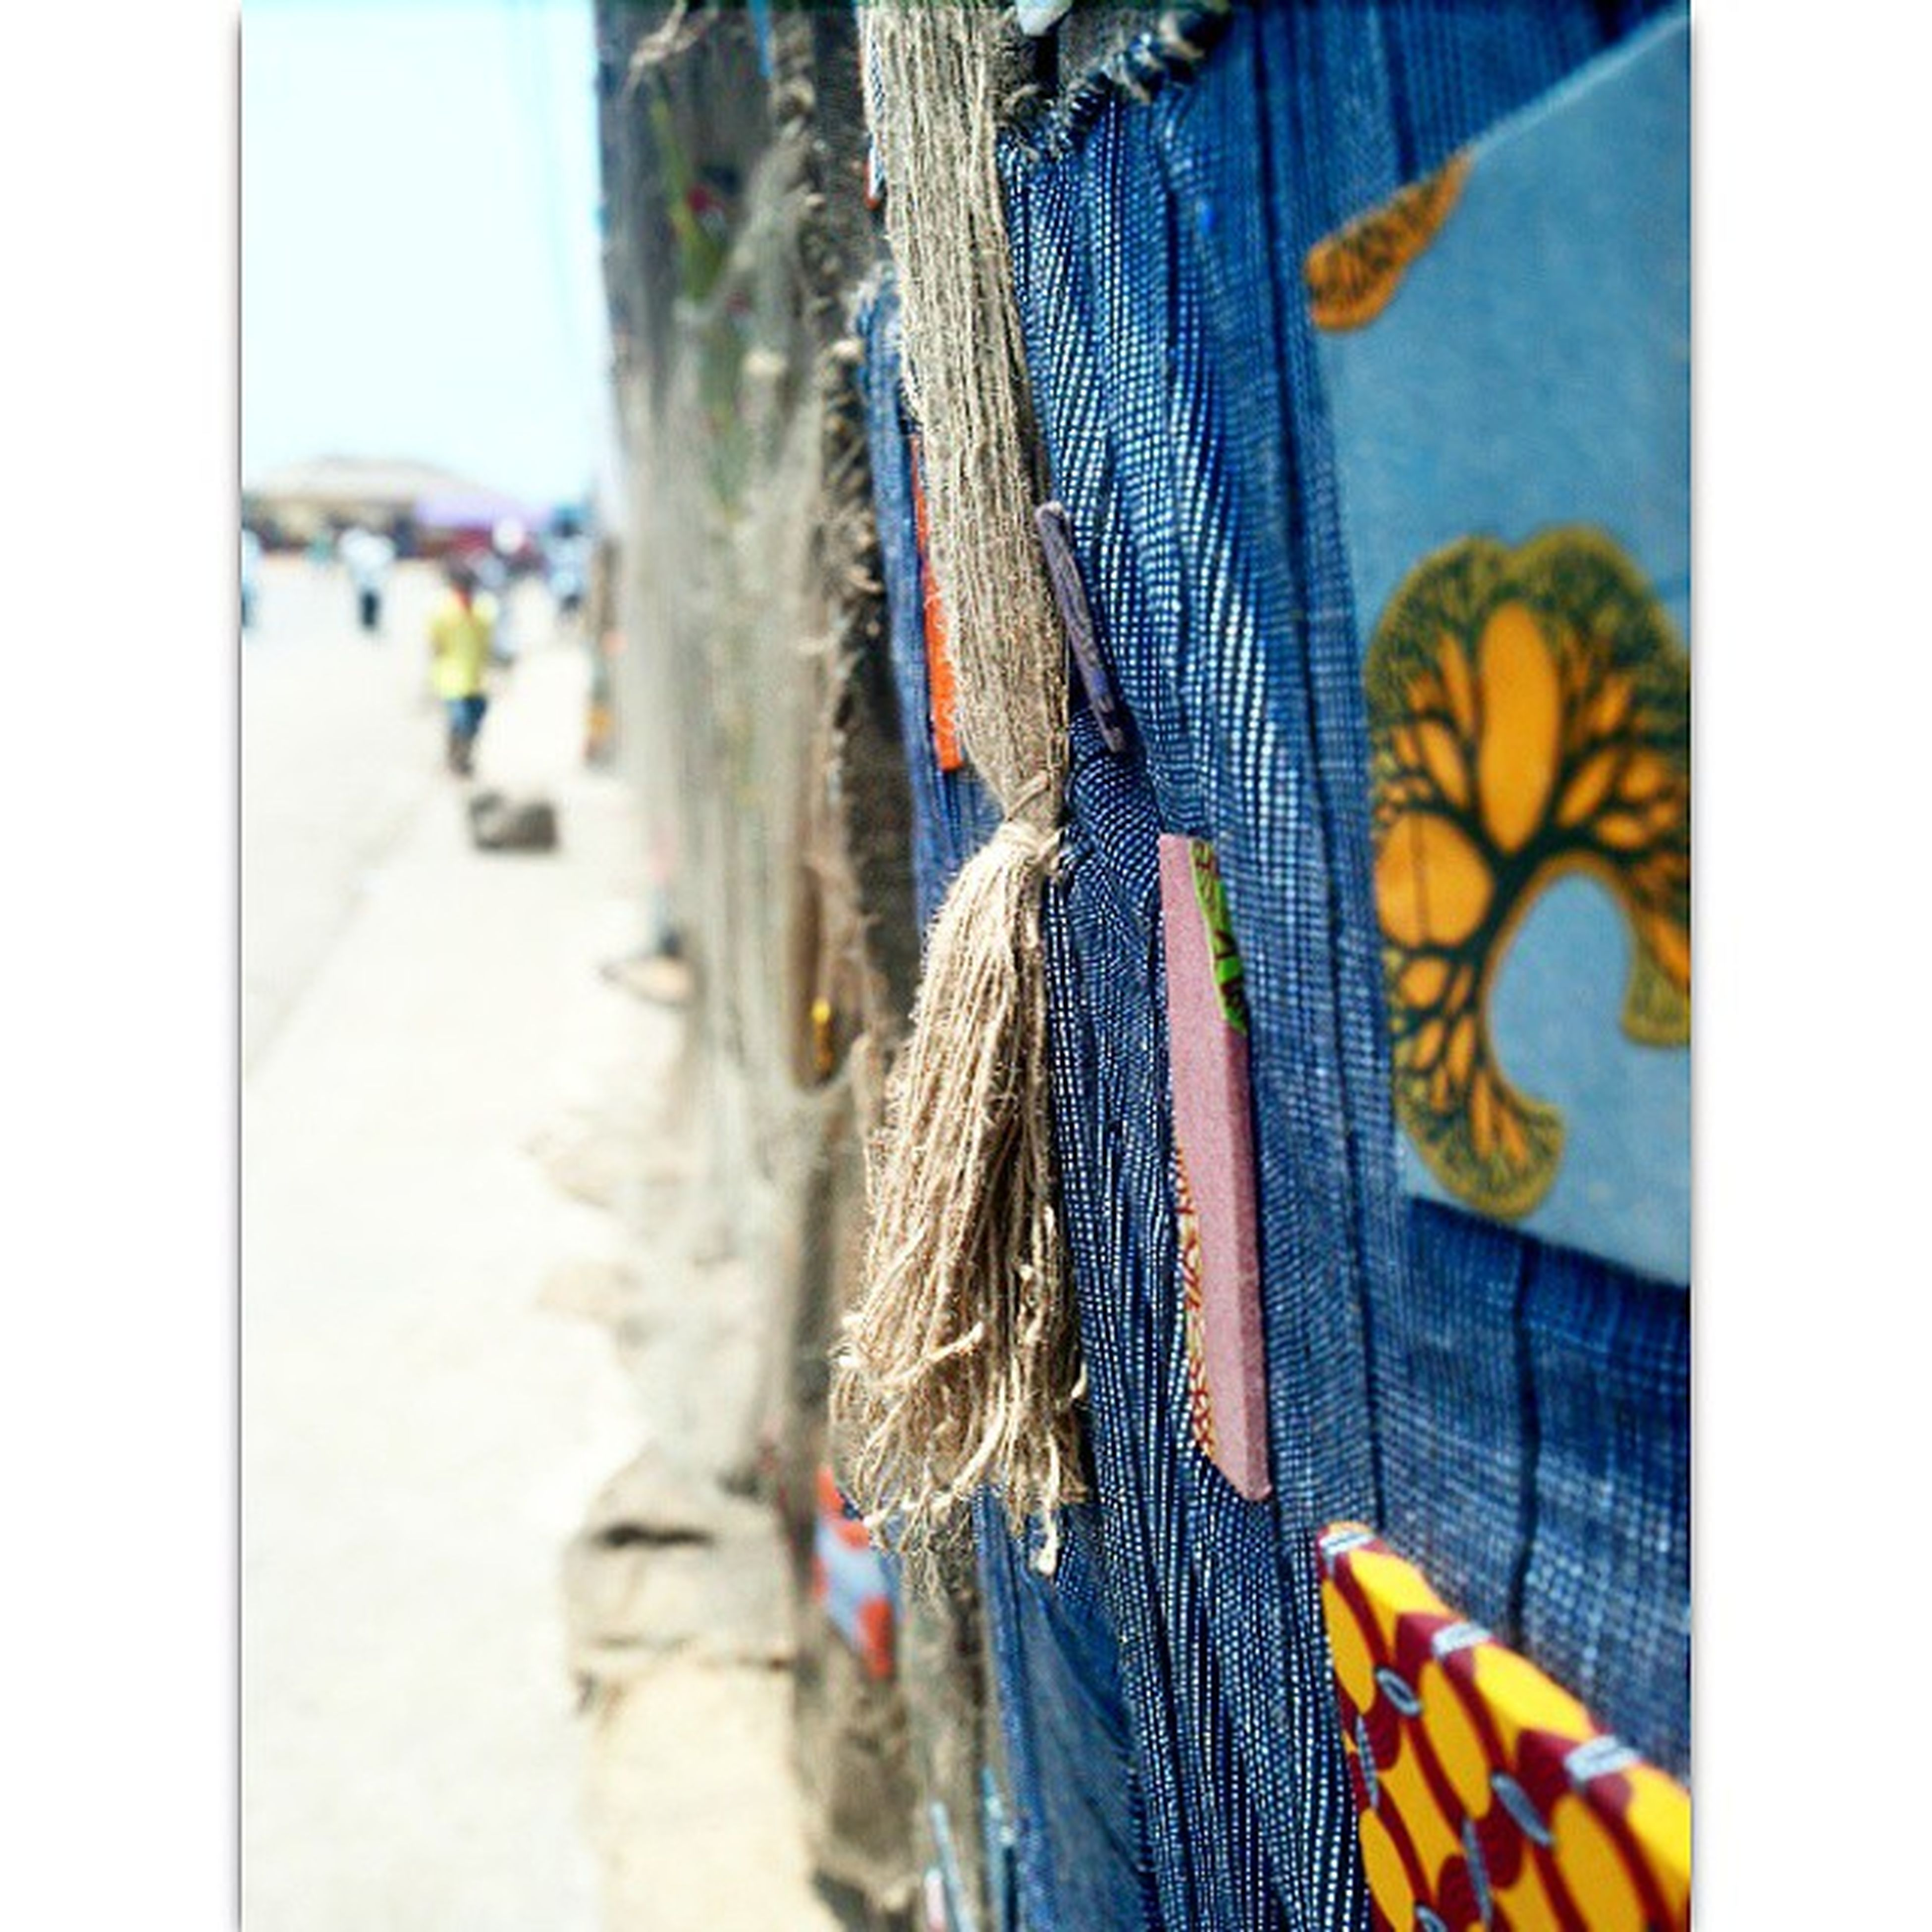 Up close with Thewall of ChaleWote2014 Ghana360 Art ghana ©2014, @iamrobotboy